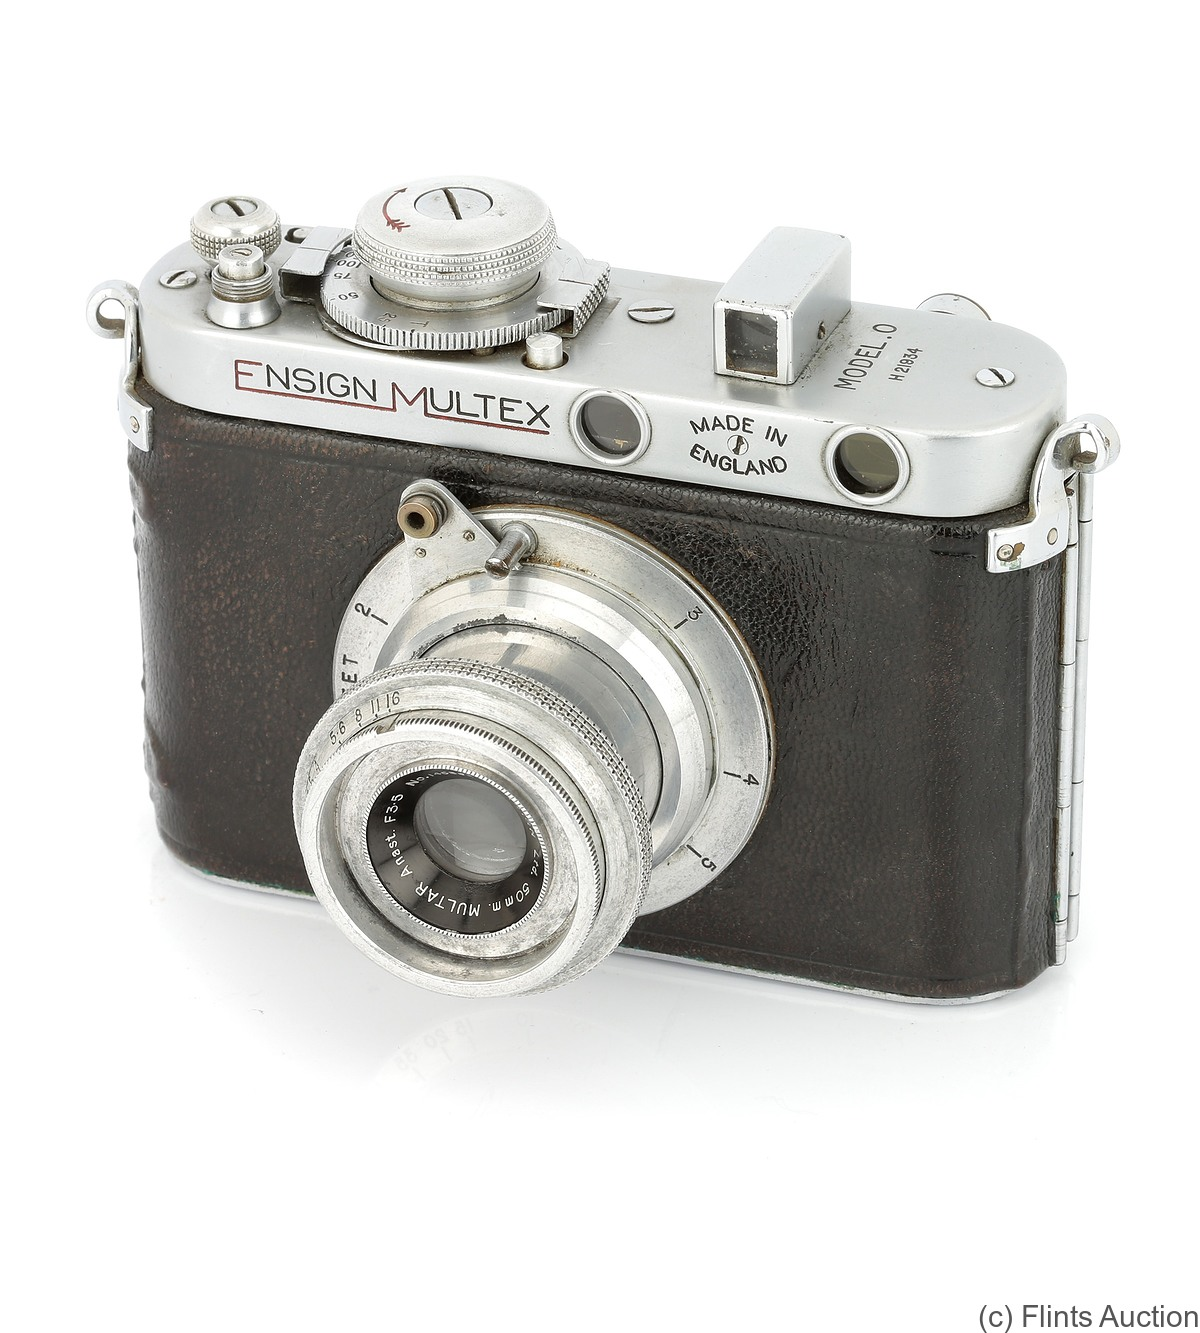 Houghton: Ensign Multex (No.0) camera